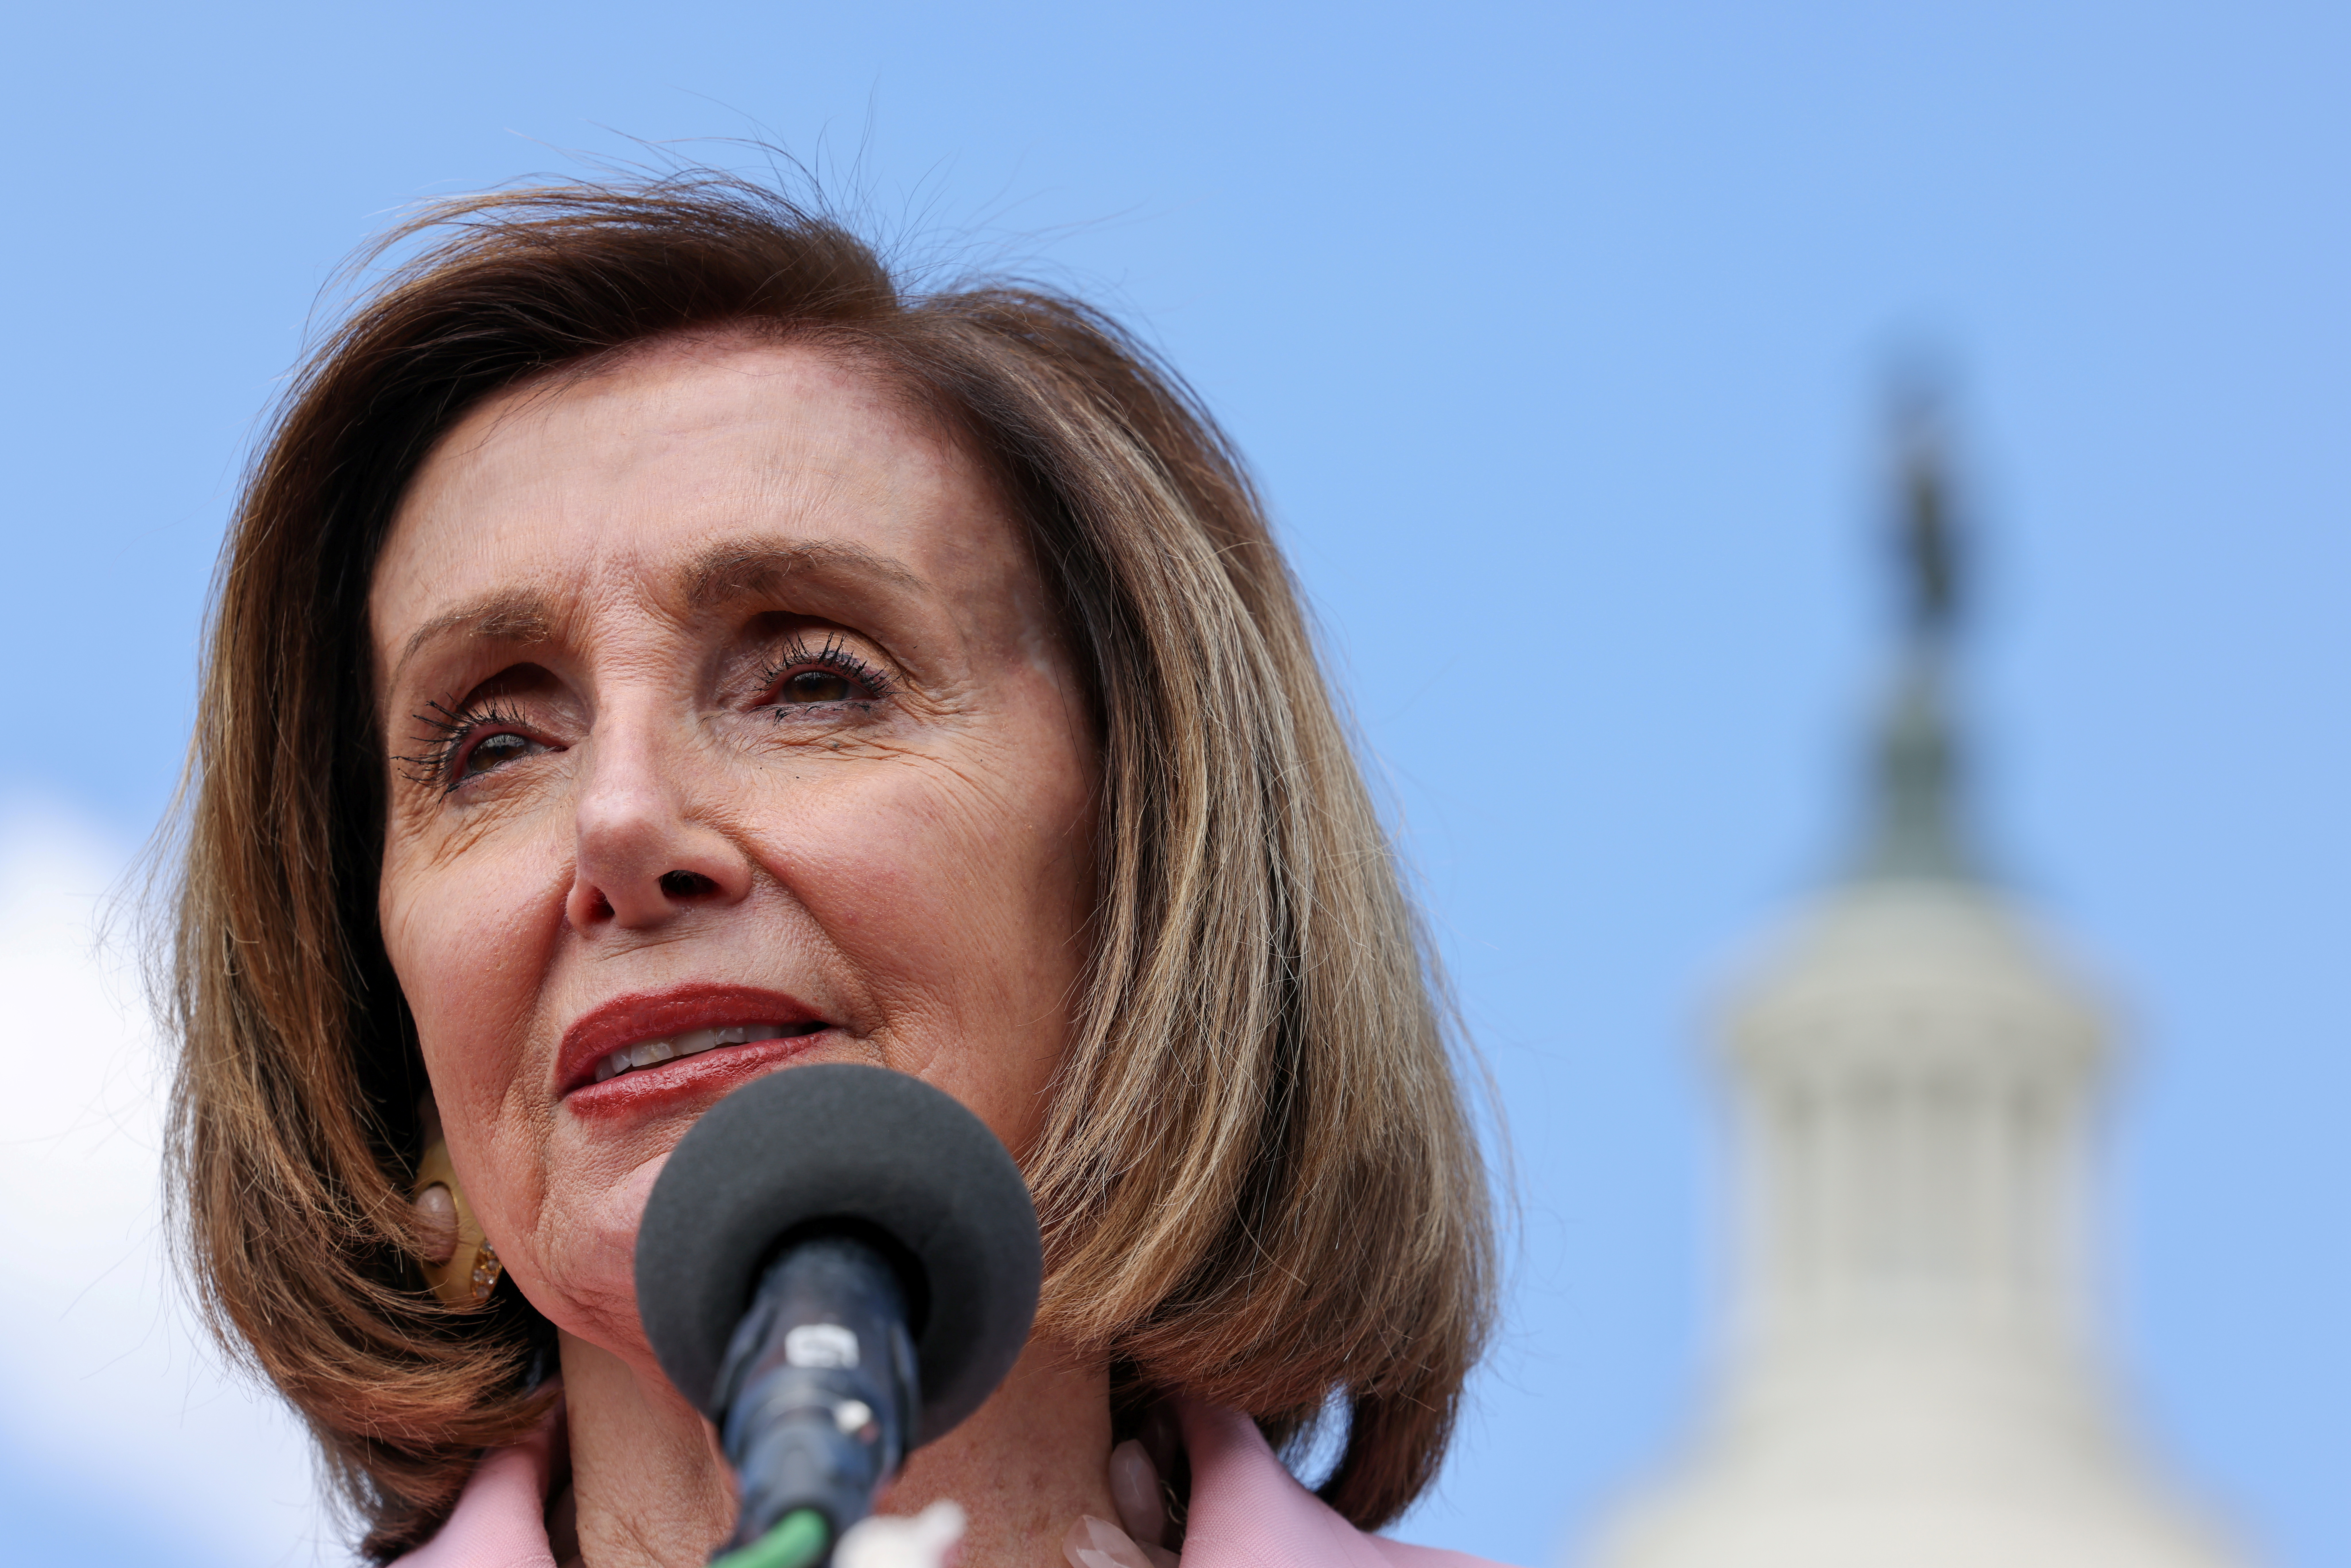 U.S. House Speaker Nancy Pelosi (D-CA) speaks during a news conference on infrastructure on Capitol Hill in Washington, U.S., May 12, 2021. REUTERS/Evelyn Hockstein